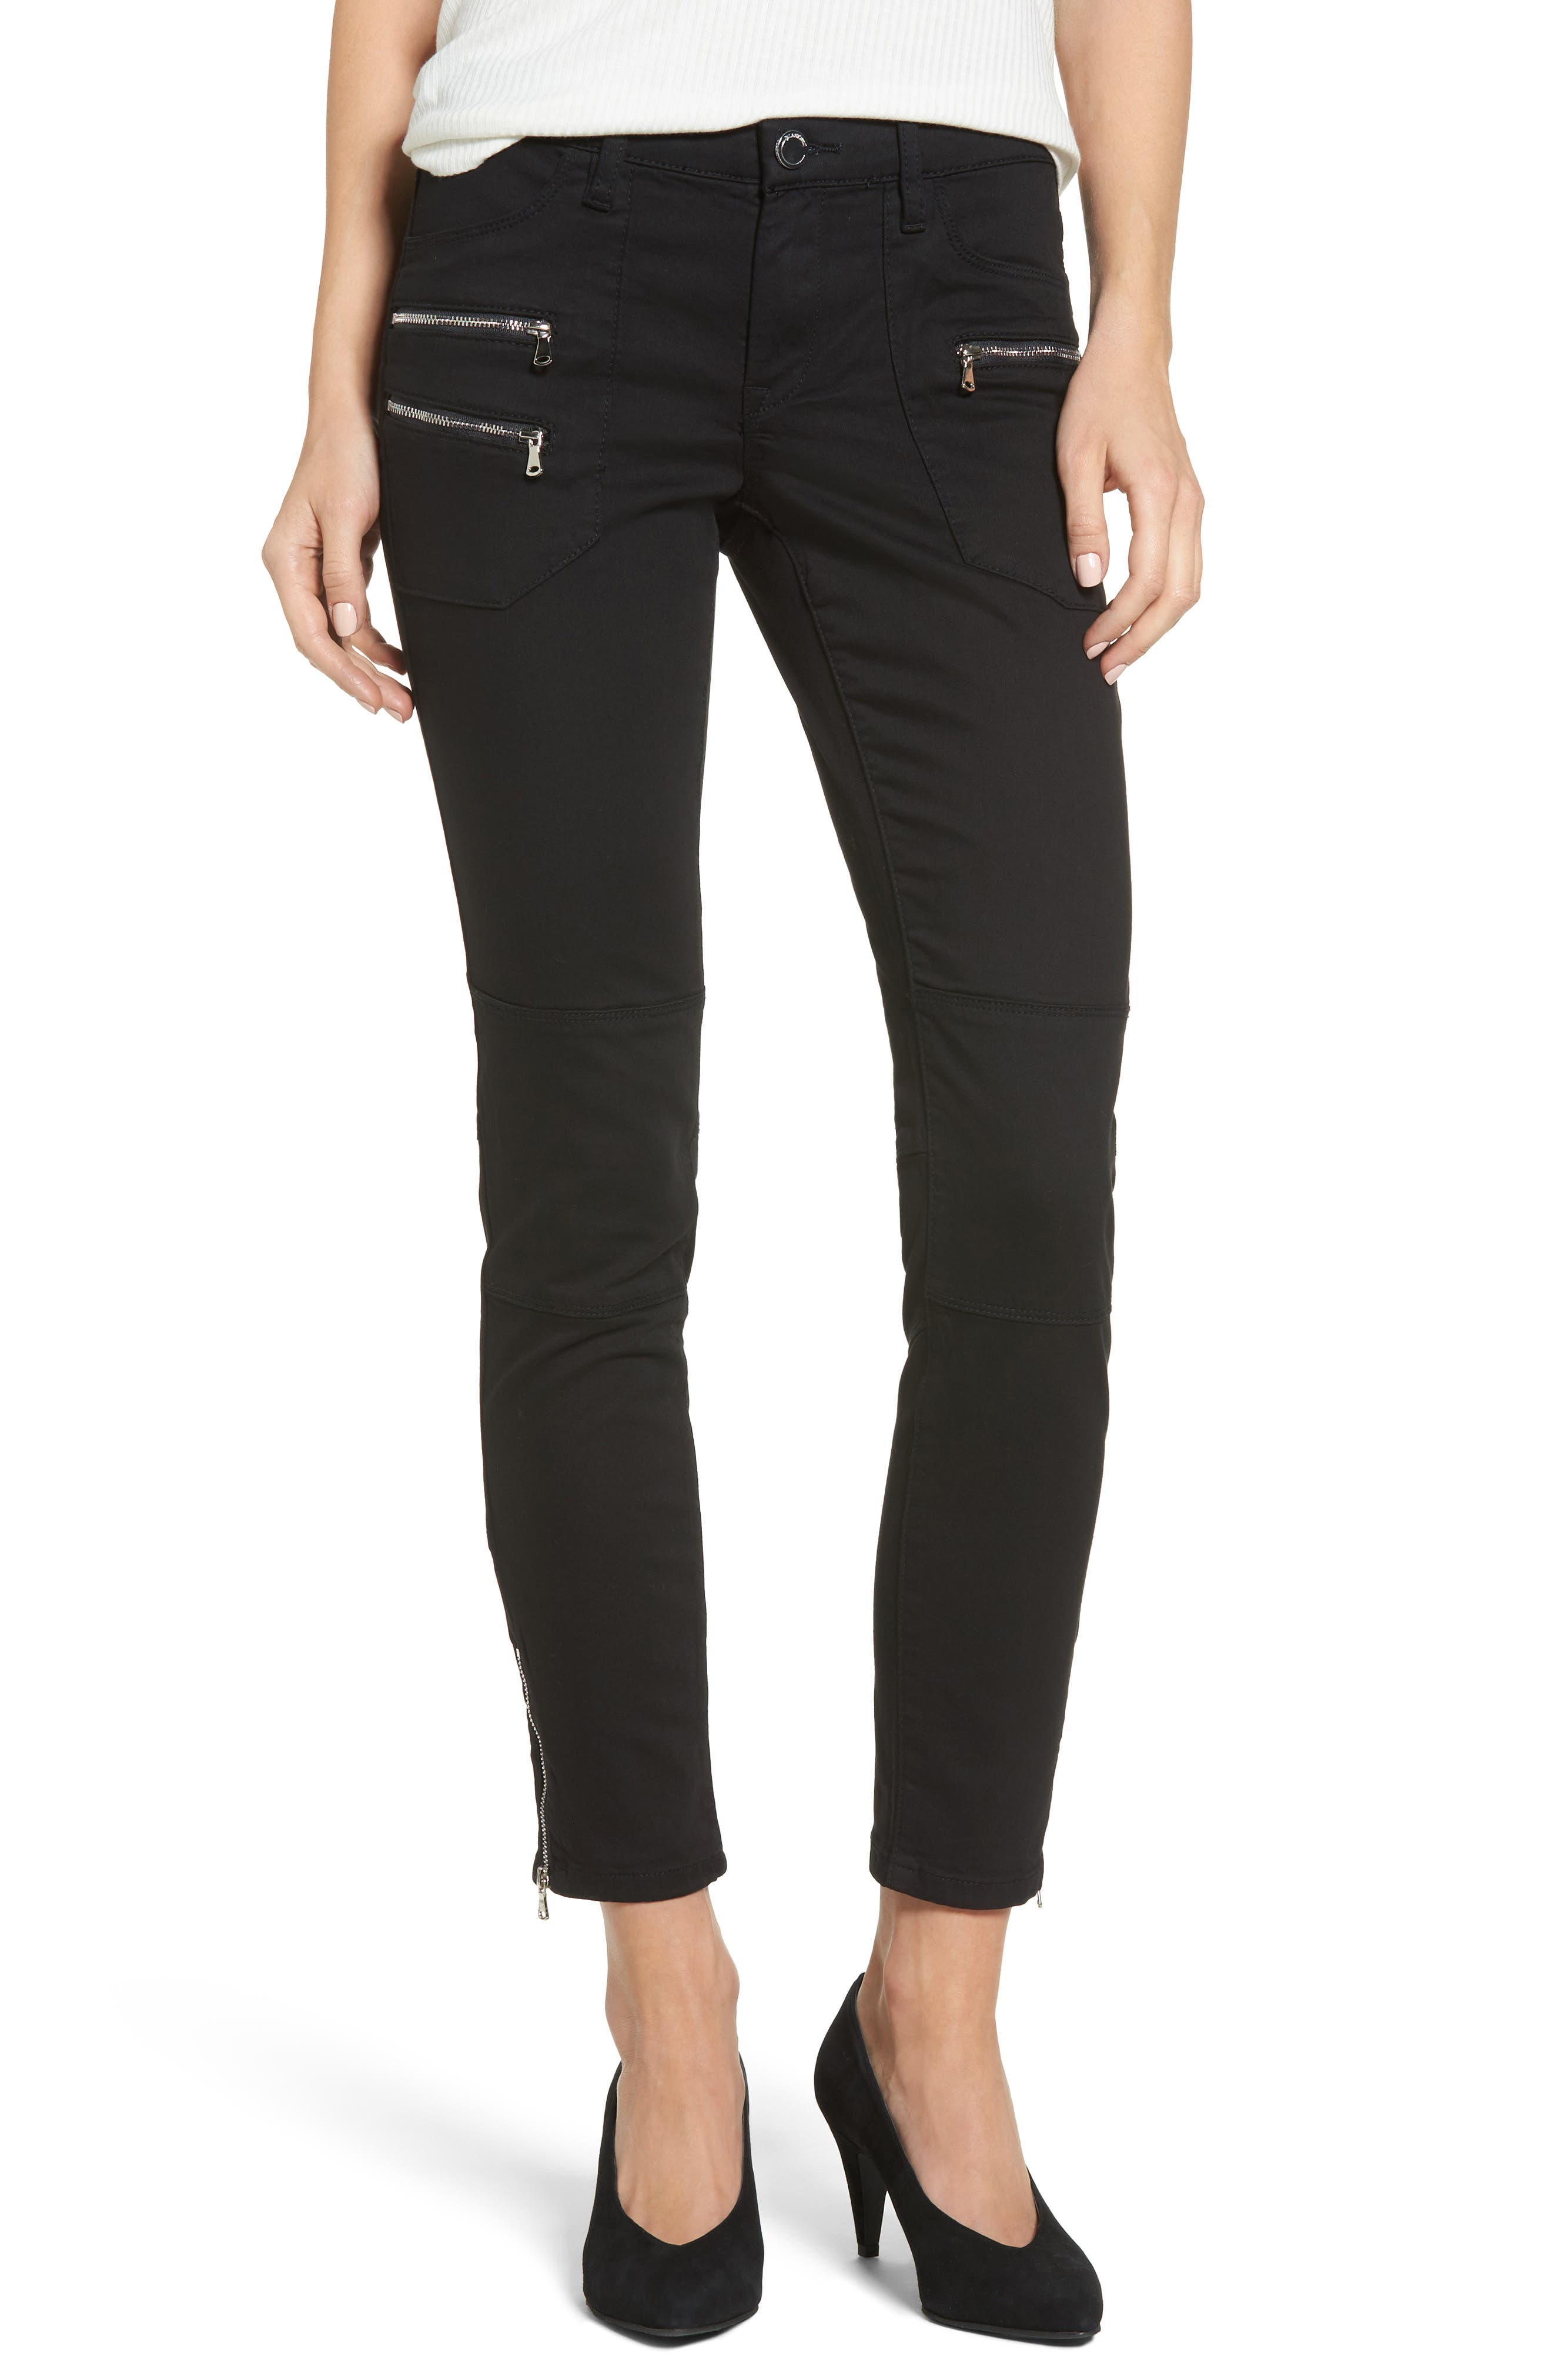 Private Party Skinny Jeans,                         Main,                         color, 001